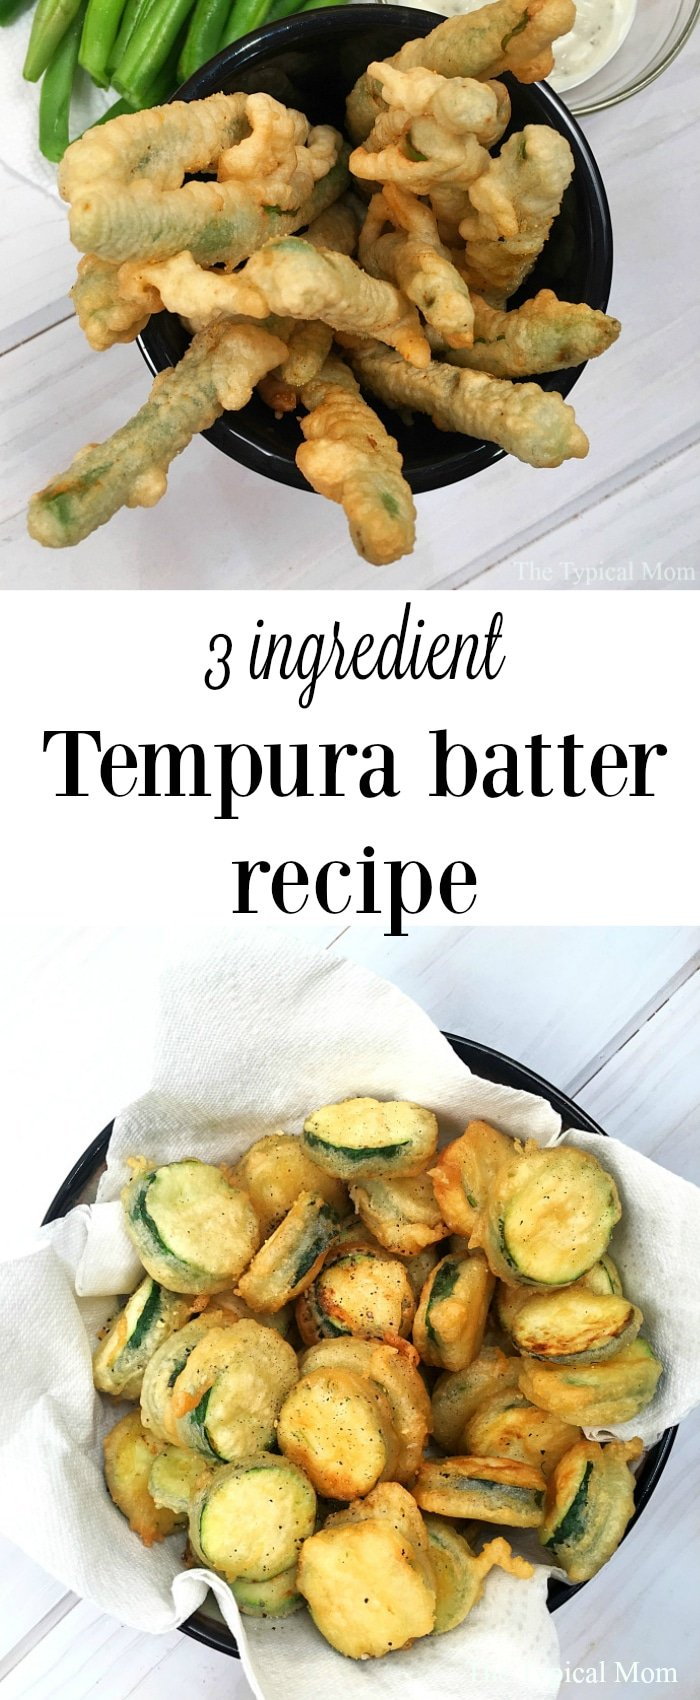 3 Ingredient Recipe For Tempura Batter The Typical Mom